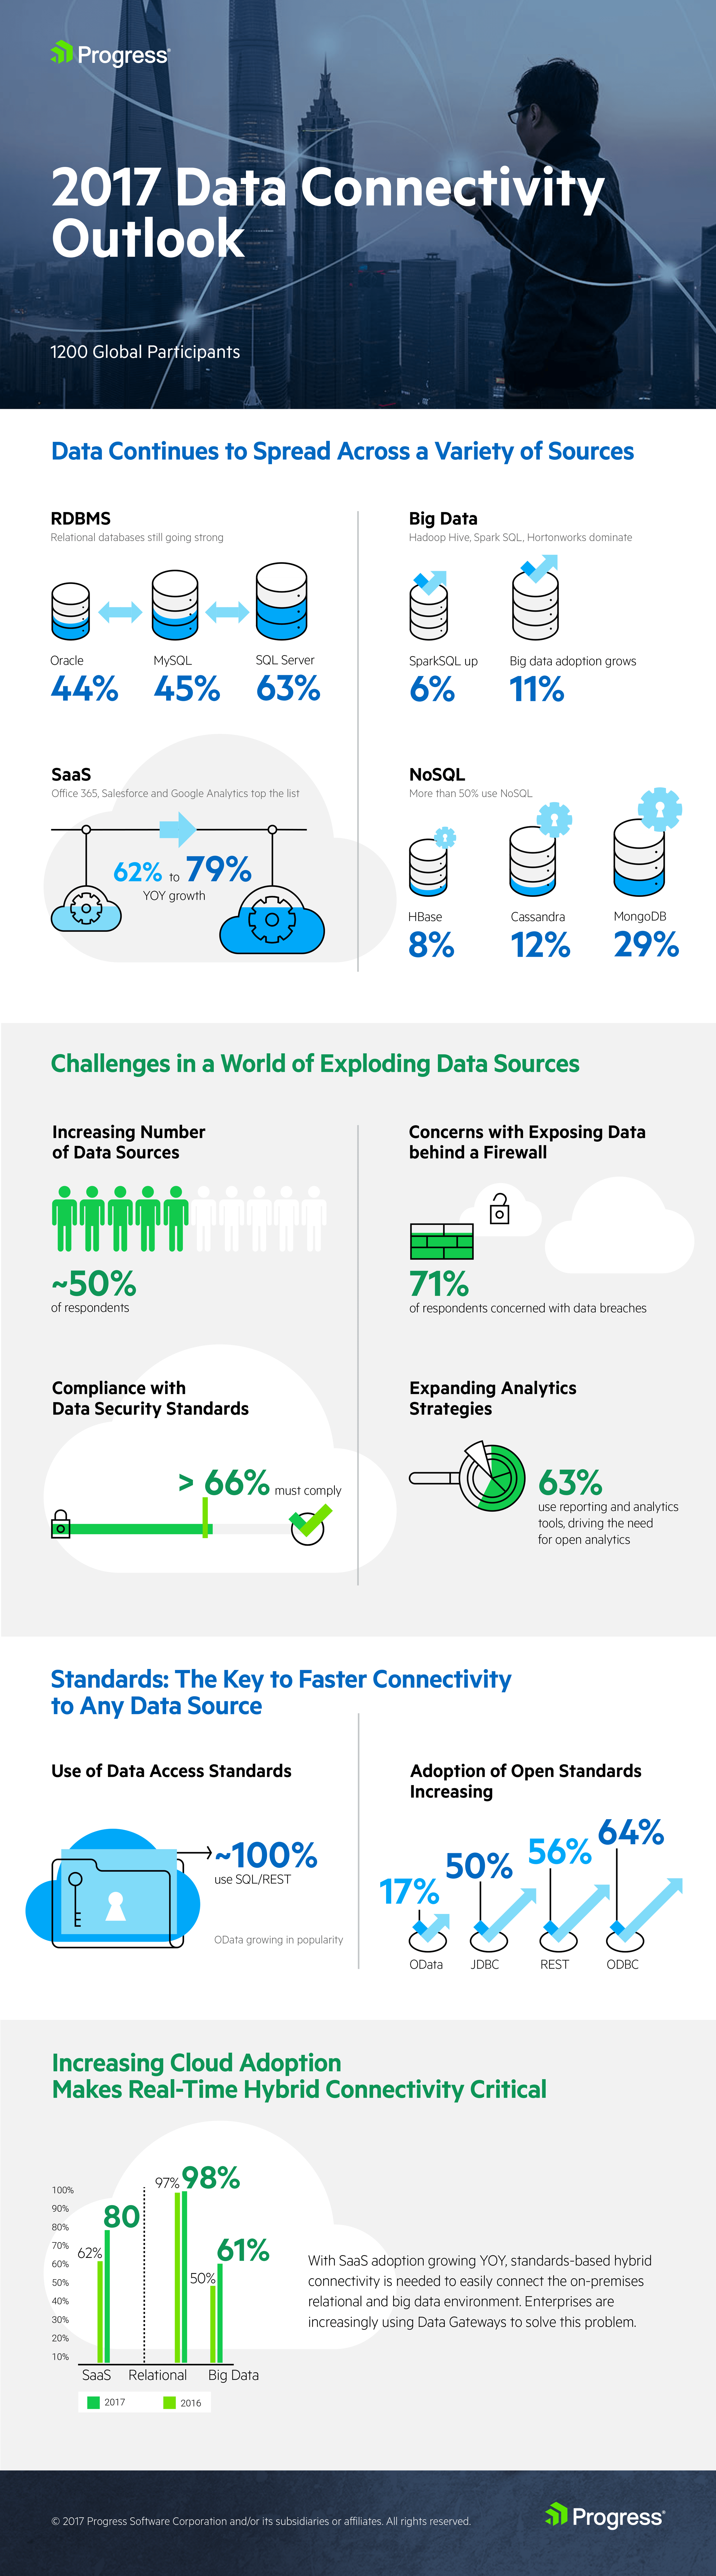 2017 Data Connectivity Outlook Infographic